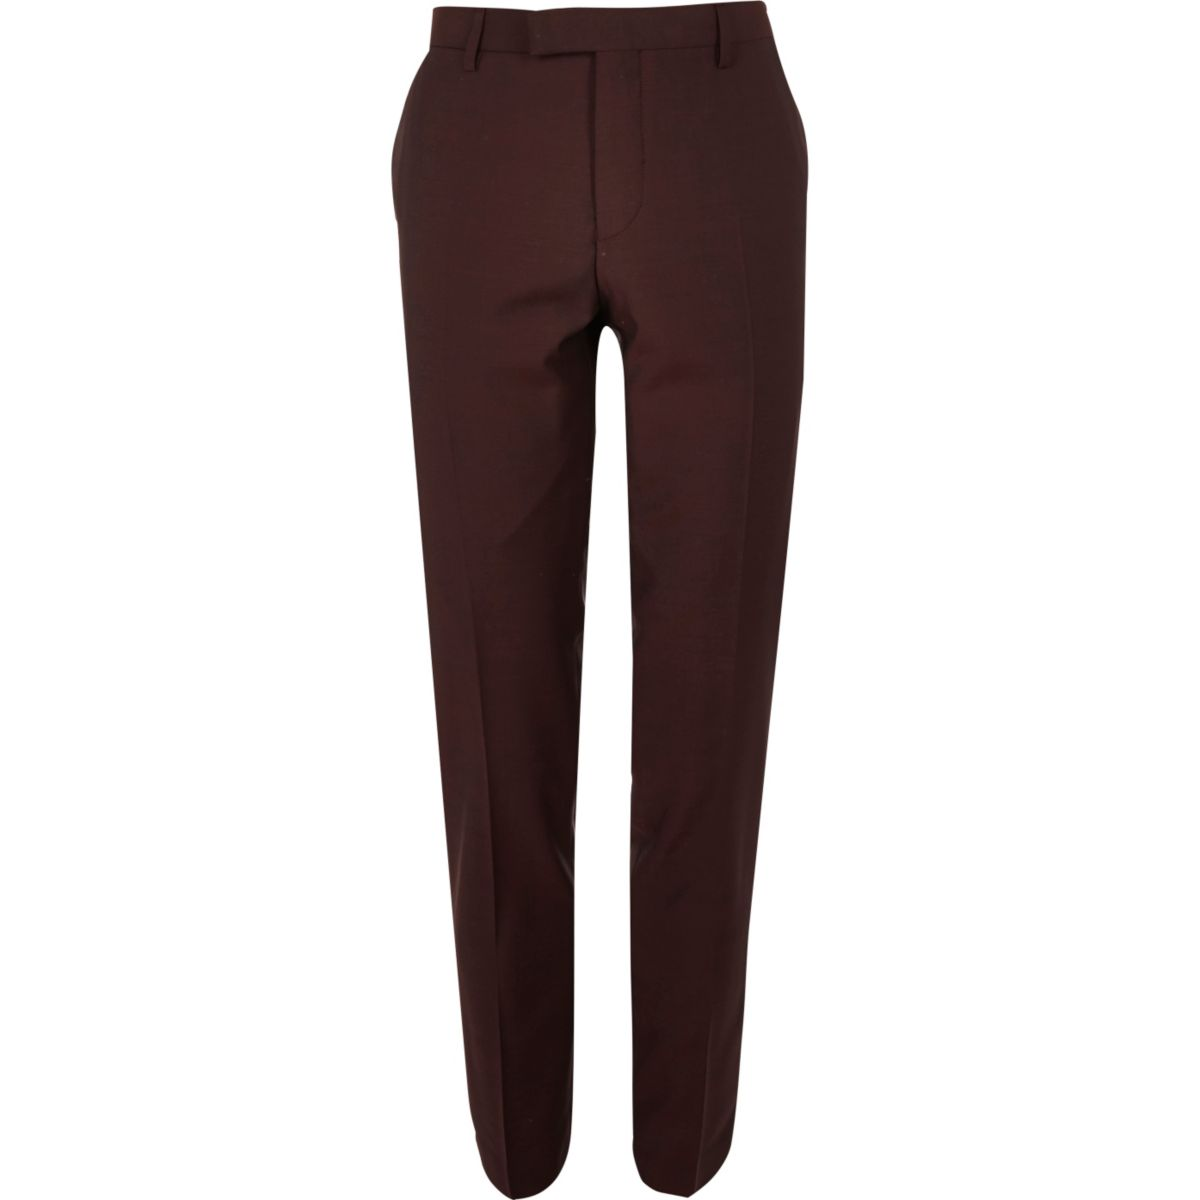 Berry skinny fit suit trousers